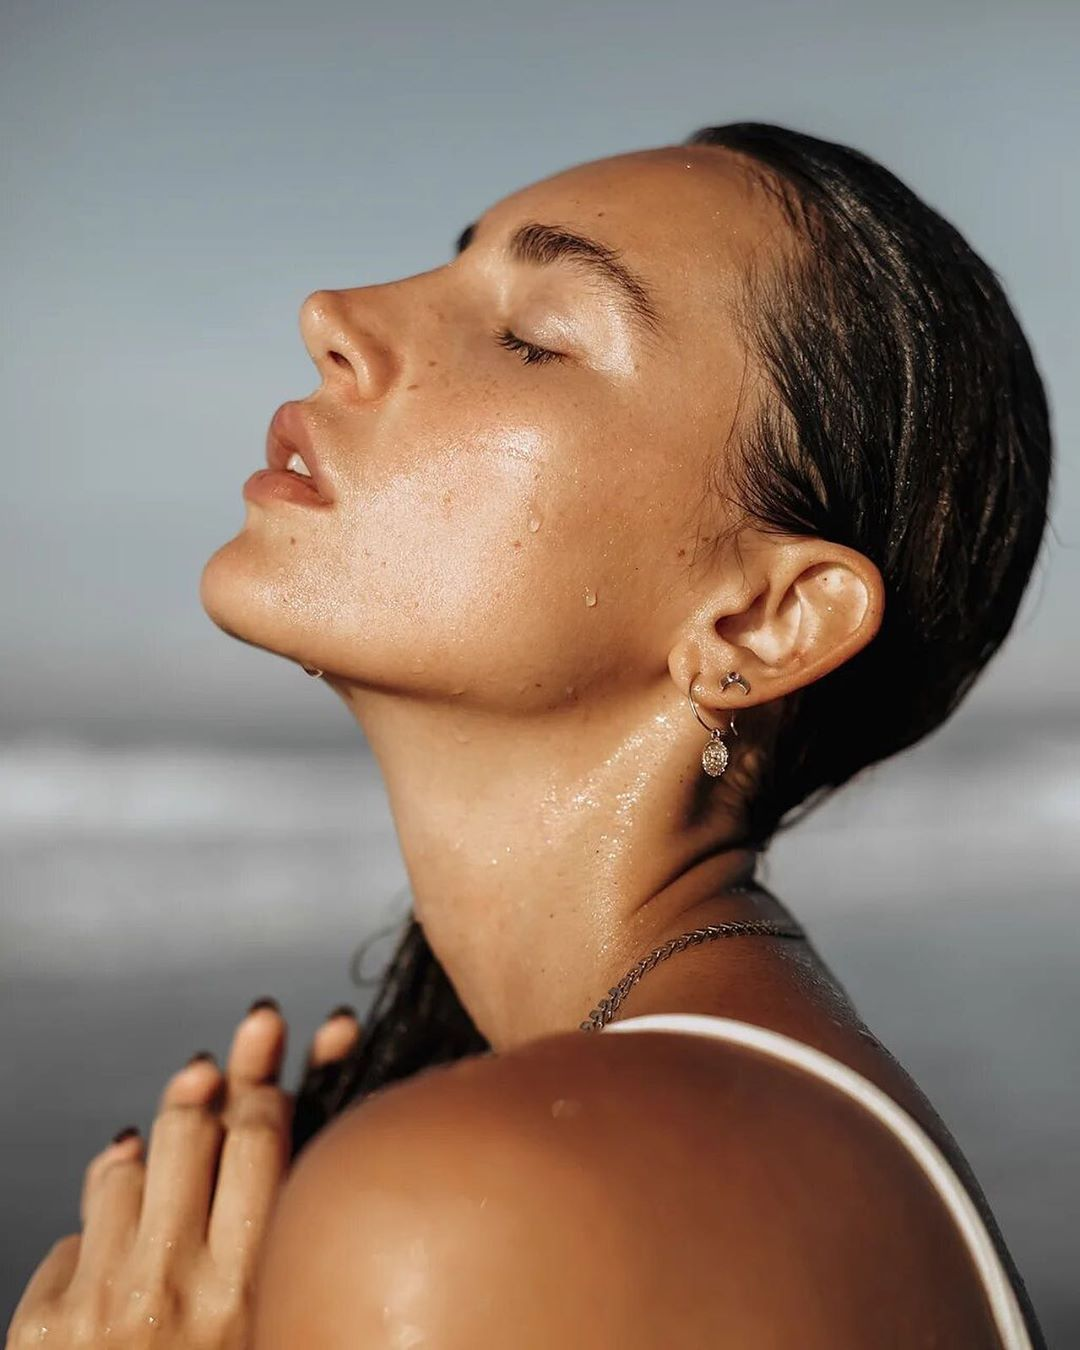 <em>Healthy Habits to Stop</em> CLENCHING YOUR JAW